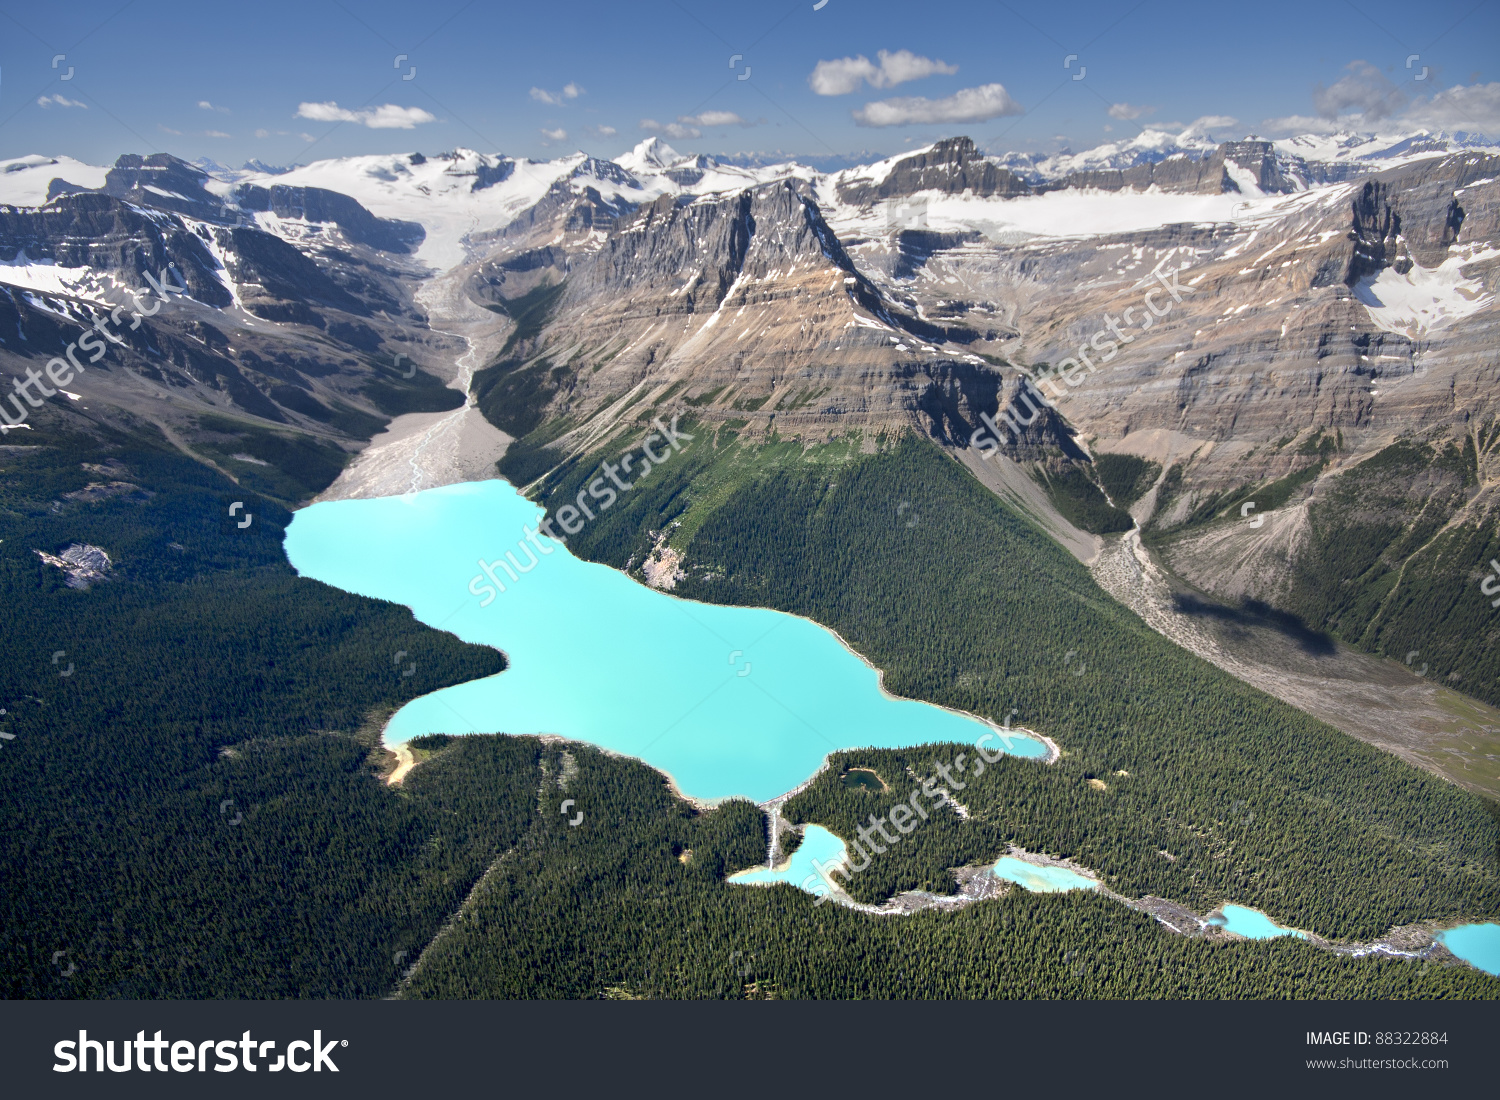 Peyto Lake clipart #17, Download drawings